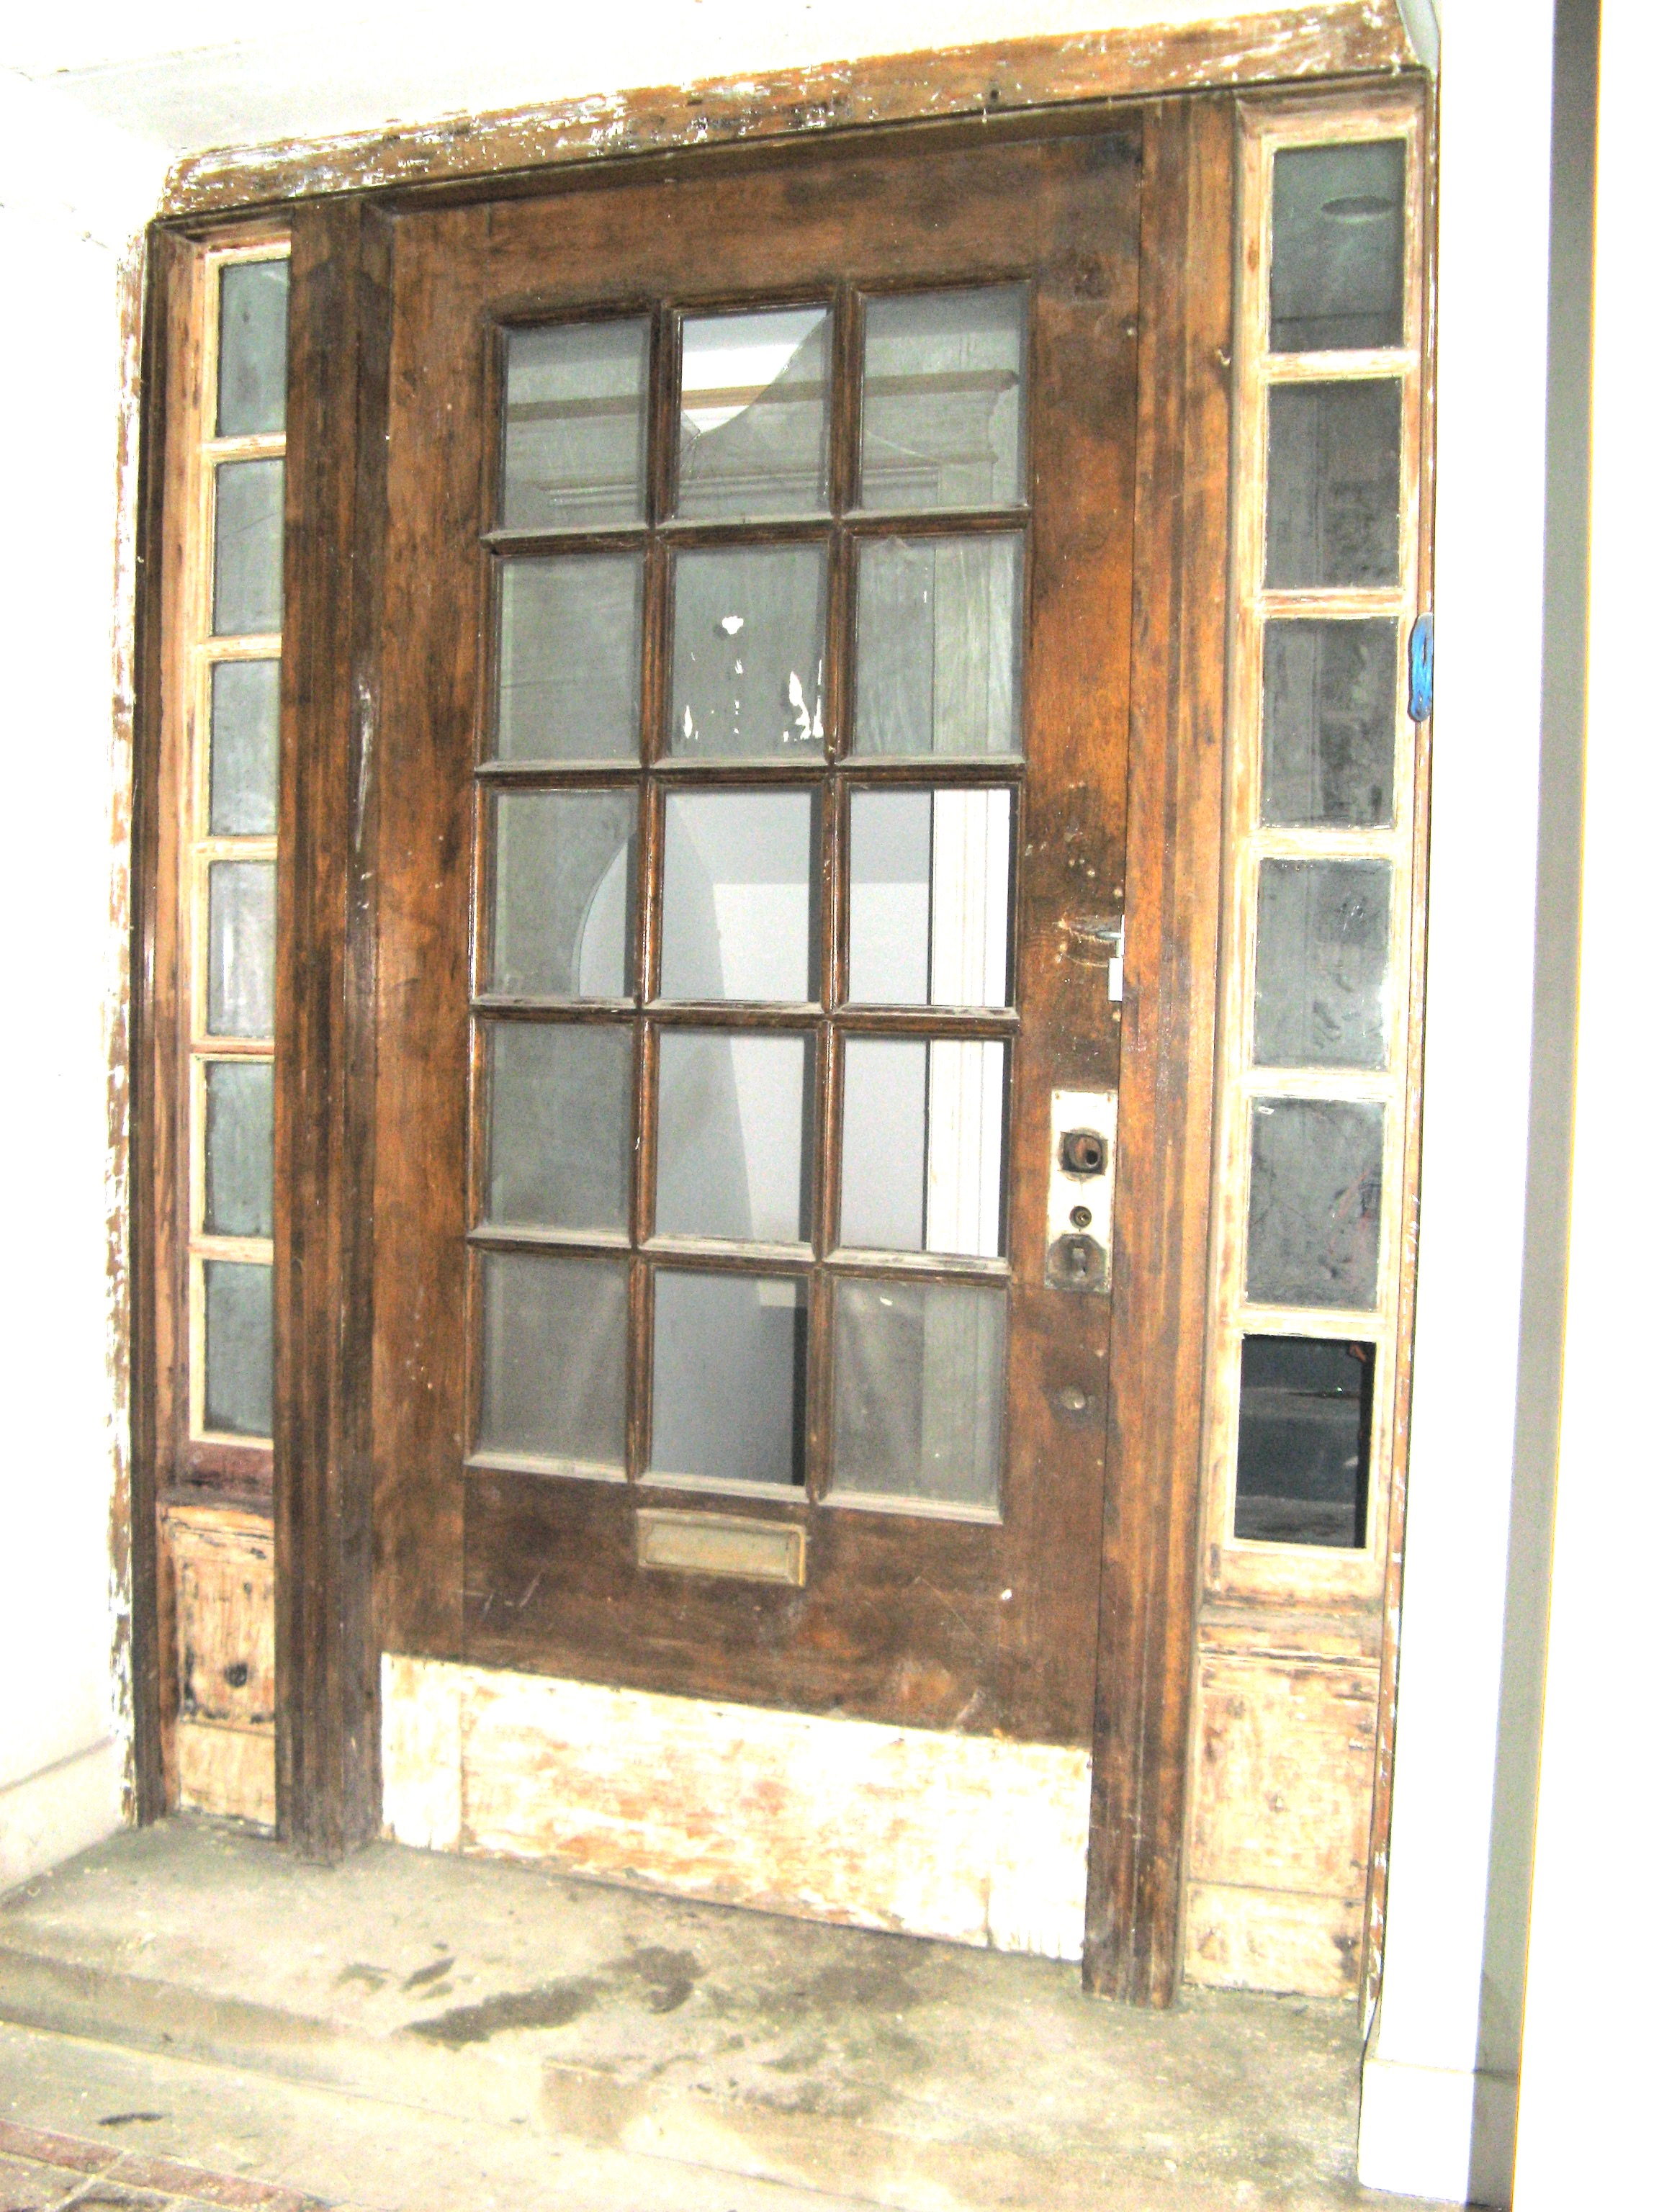 This is the entryway to a house with a historic facade easement which required the architect to either restore it or replace it with an exact reproduction. & Logan Square Doors - Oak Brothers